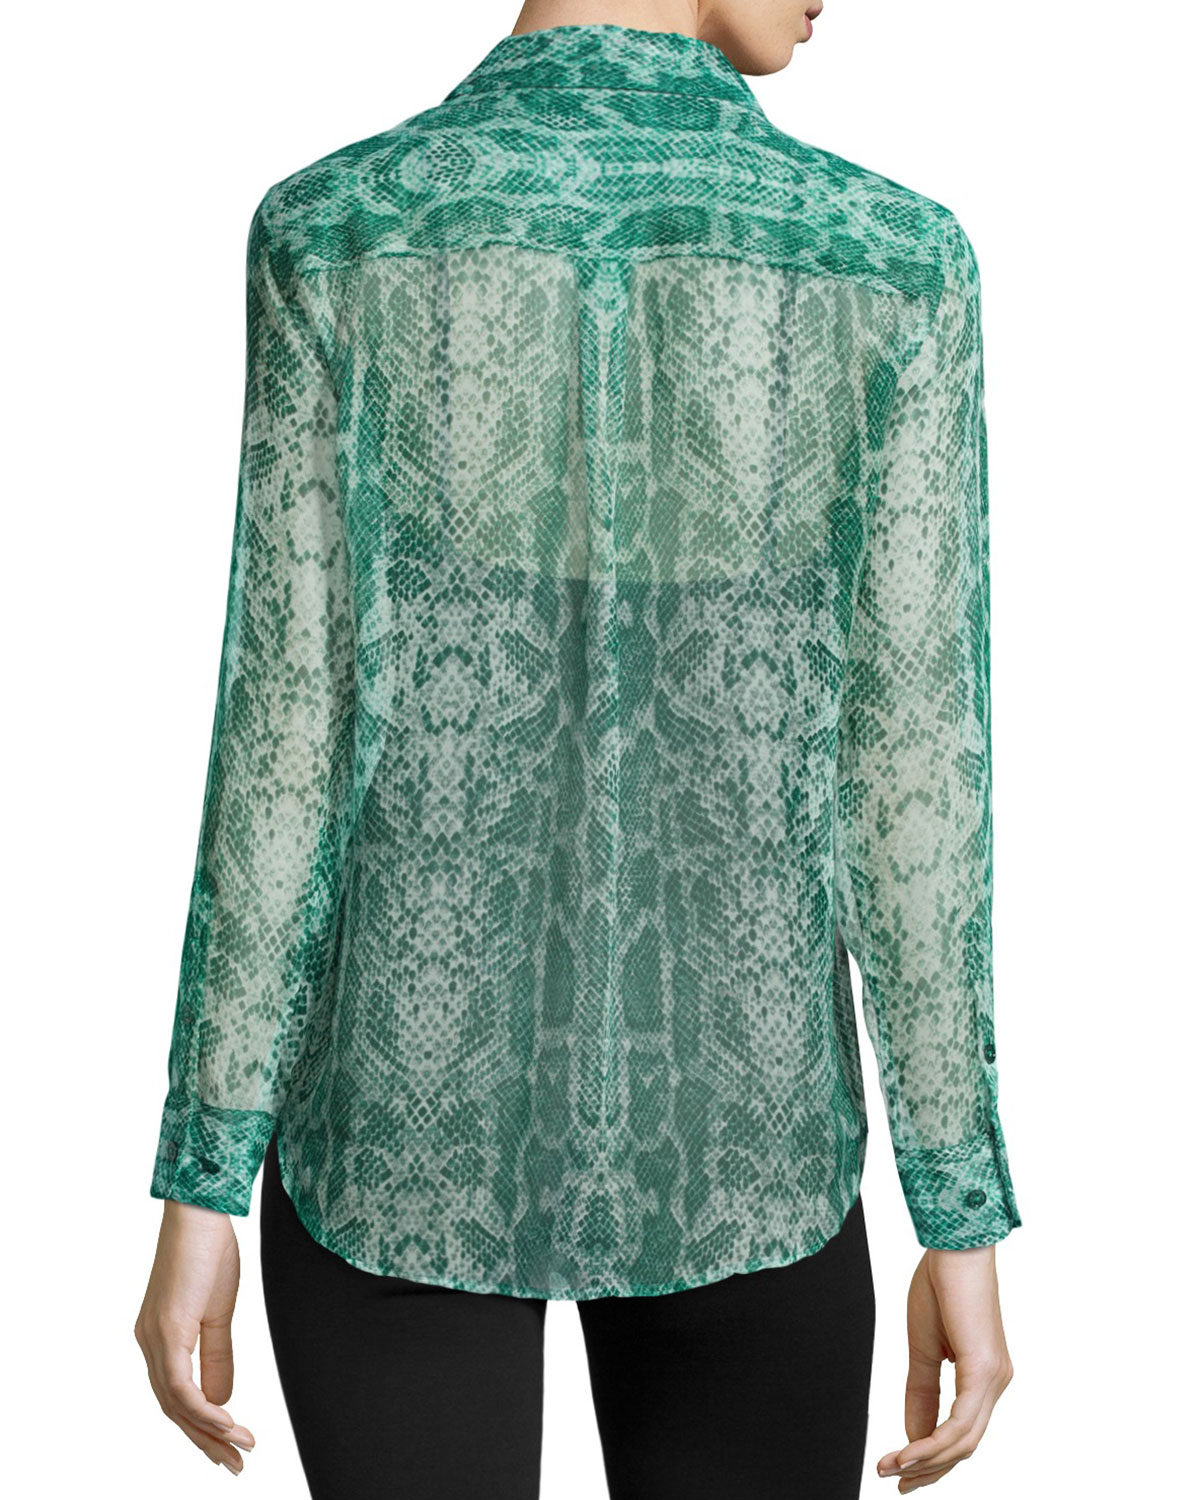 Liz Claiborne Long Sleeve Split Crew Neck Floral jelly555.ml Rewards Points· % Off Boots· 60% Off Outerwear· Free Shipping to Stores,+ followers on Twitter.